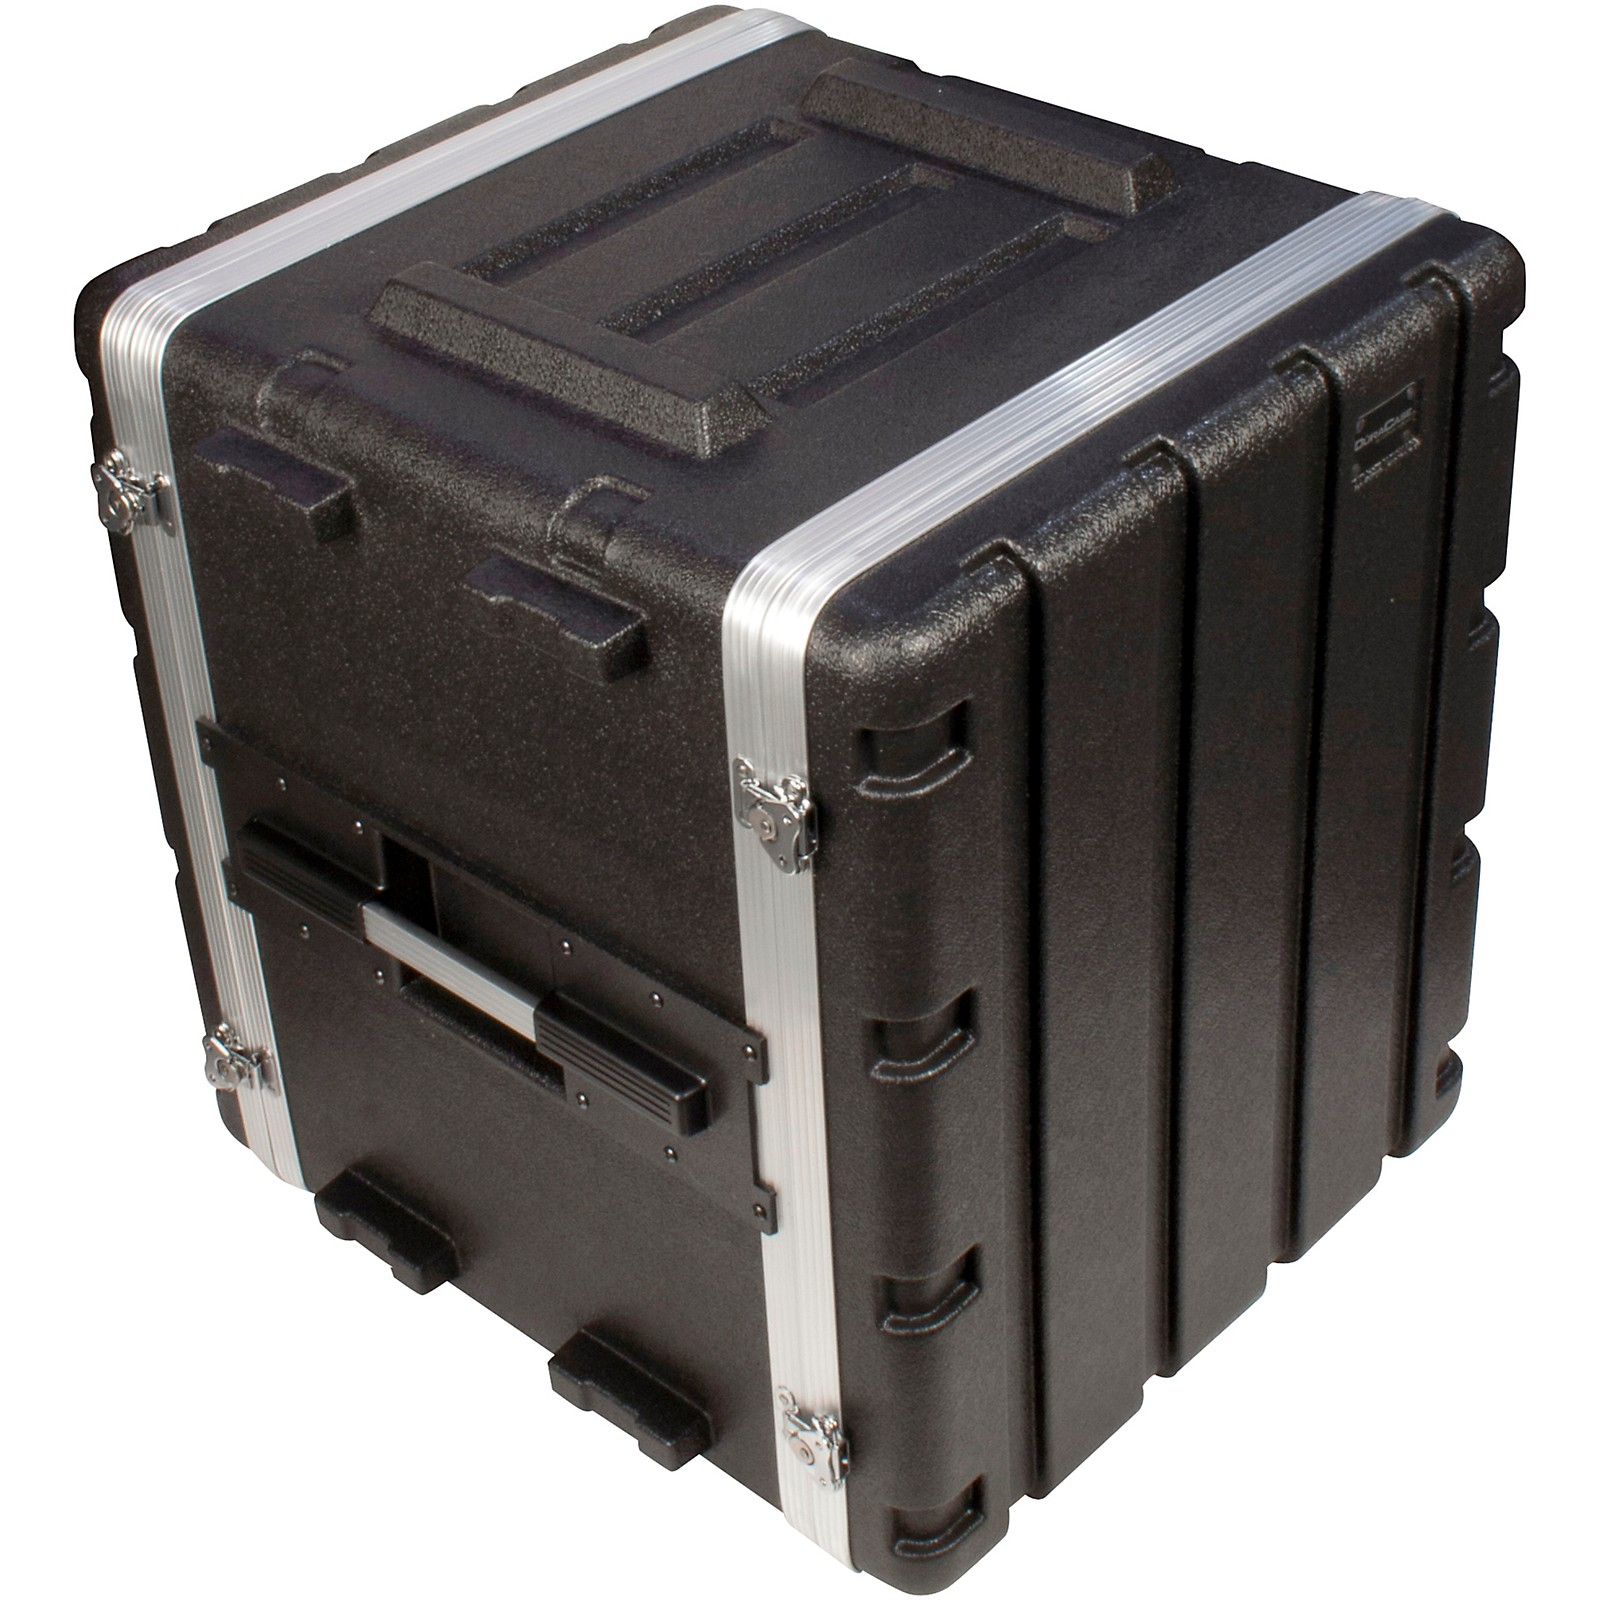 Ultimate Support DuraCase UR-12L Portable 12-Space Rackmount Case